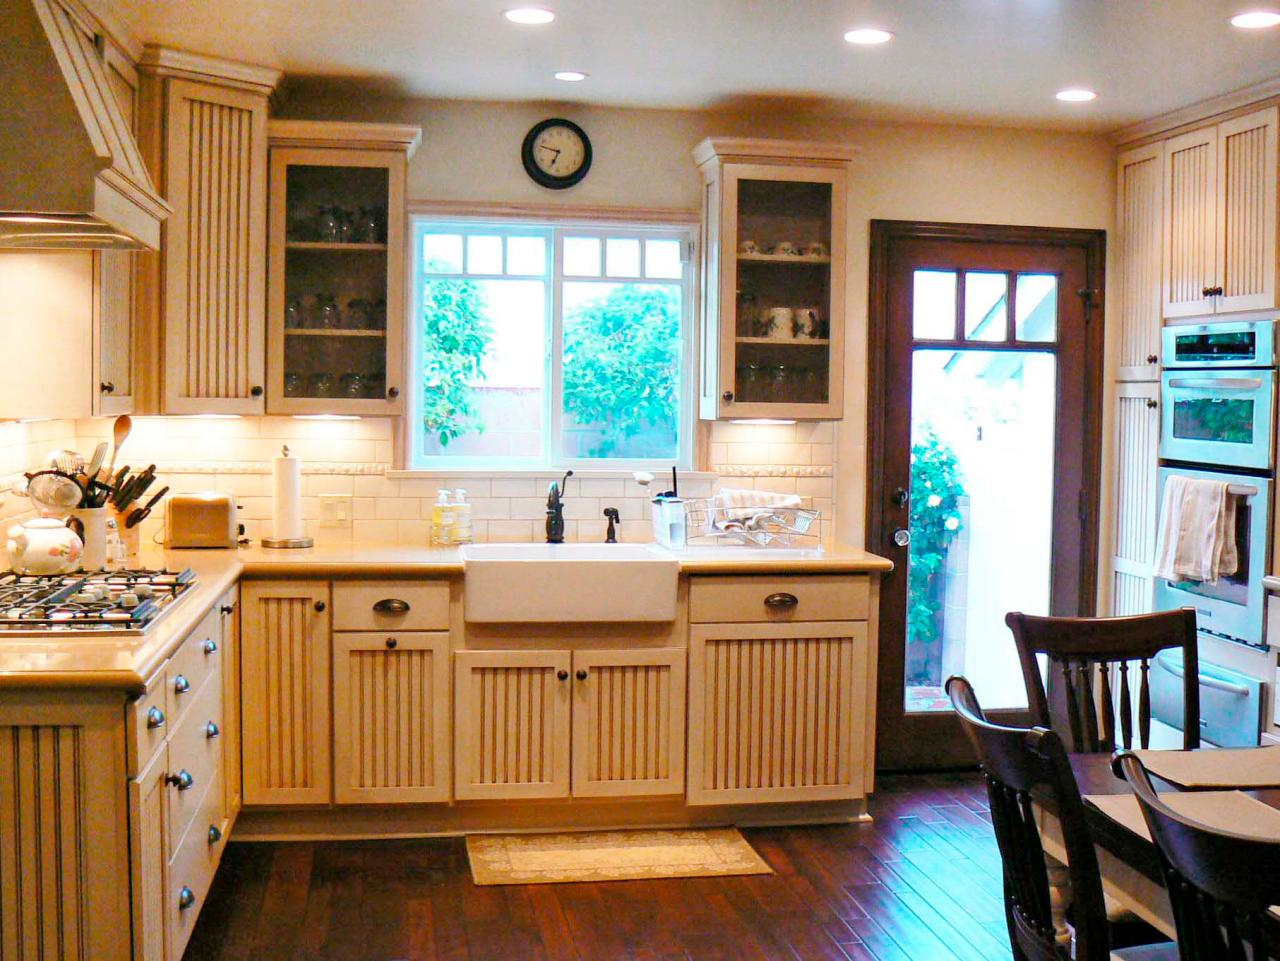 Awesome Kitchen Layout Design Ideas Part - 1: HGTV.com